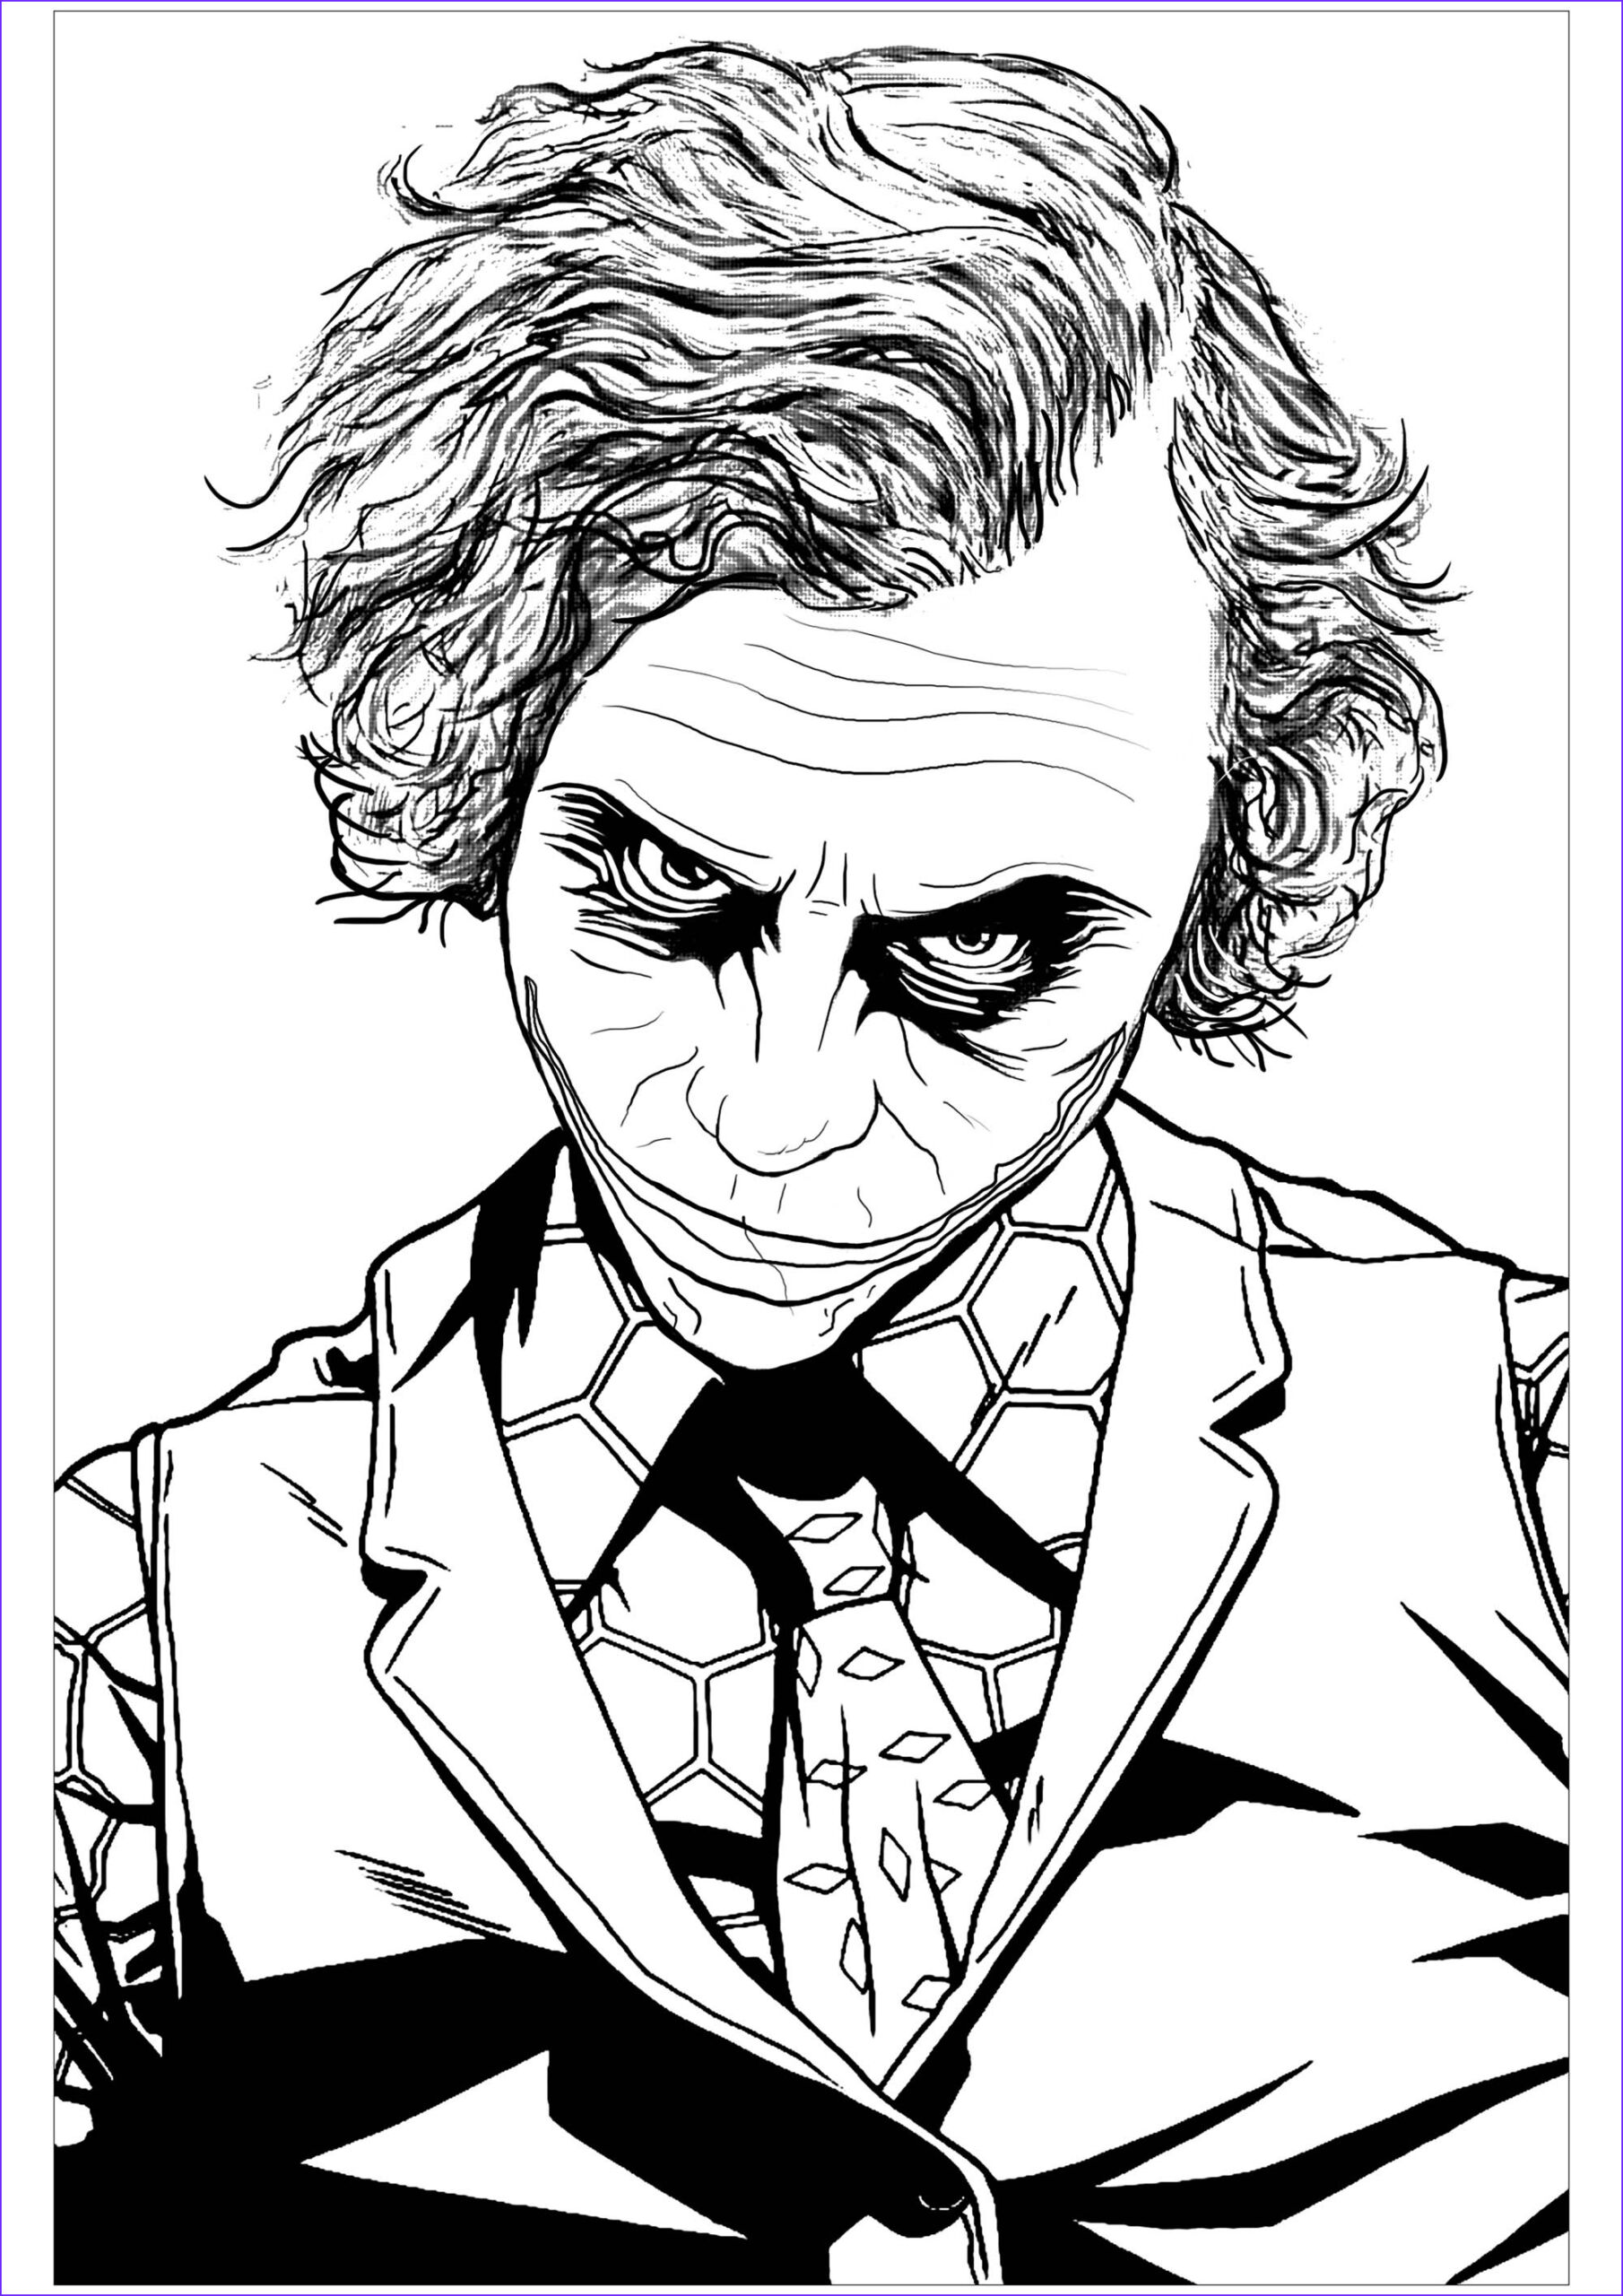 image=movie posters coloring page joker heath ledger 1